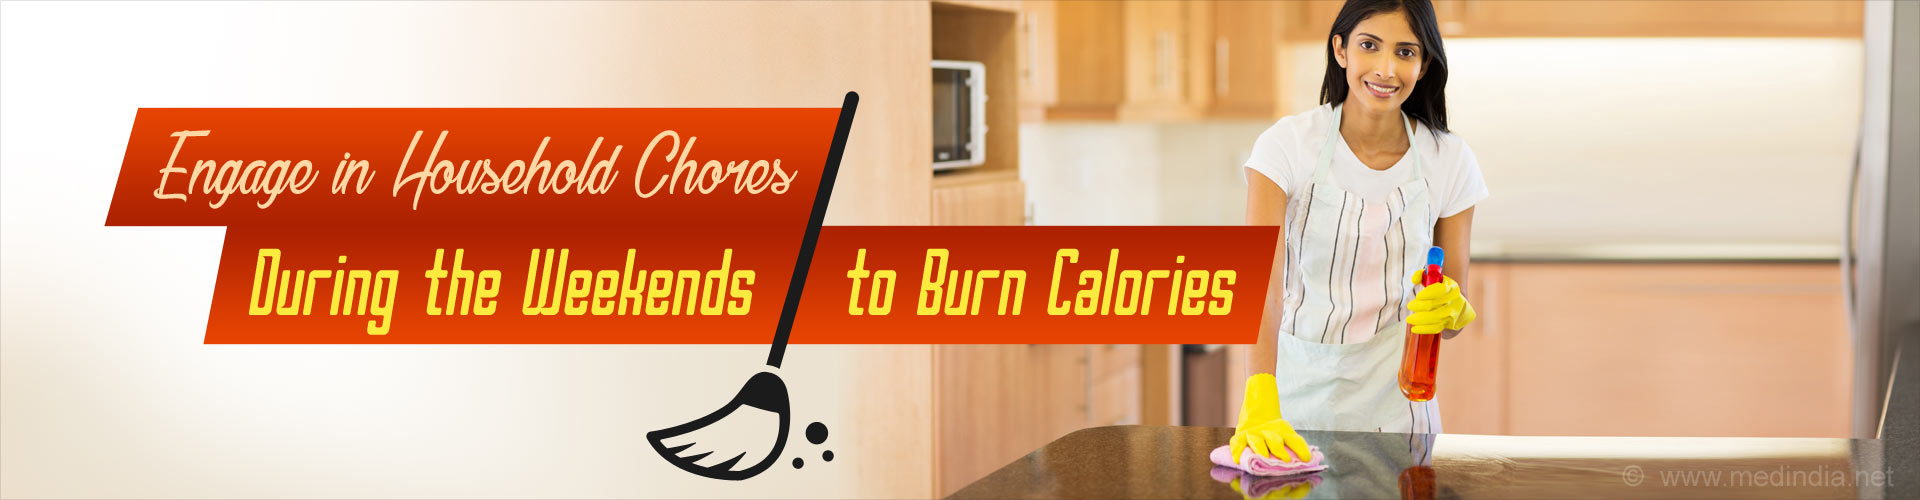 Engage in Household Chores During the Weekends to Burn Calories